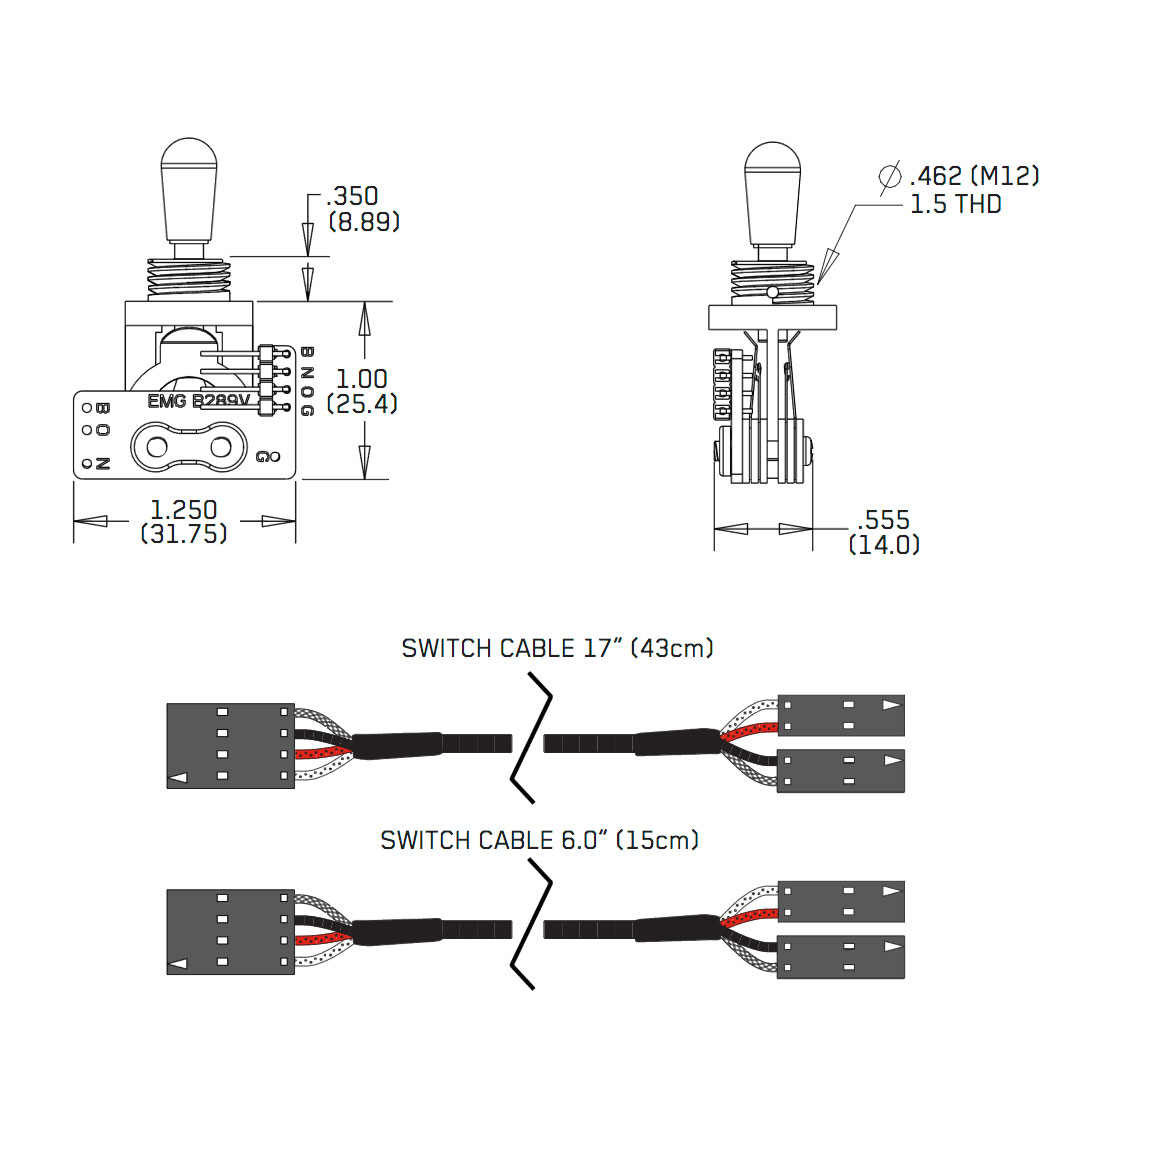 Emg Solderless 5 Way Switch Wiring Diagram EMG Wiring Jack